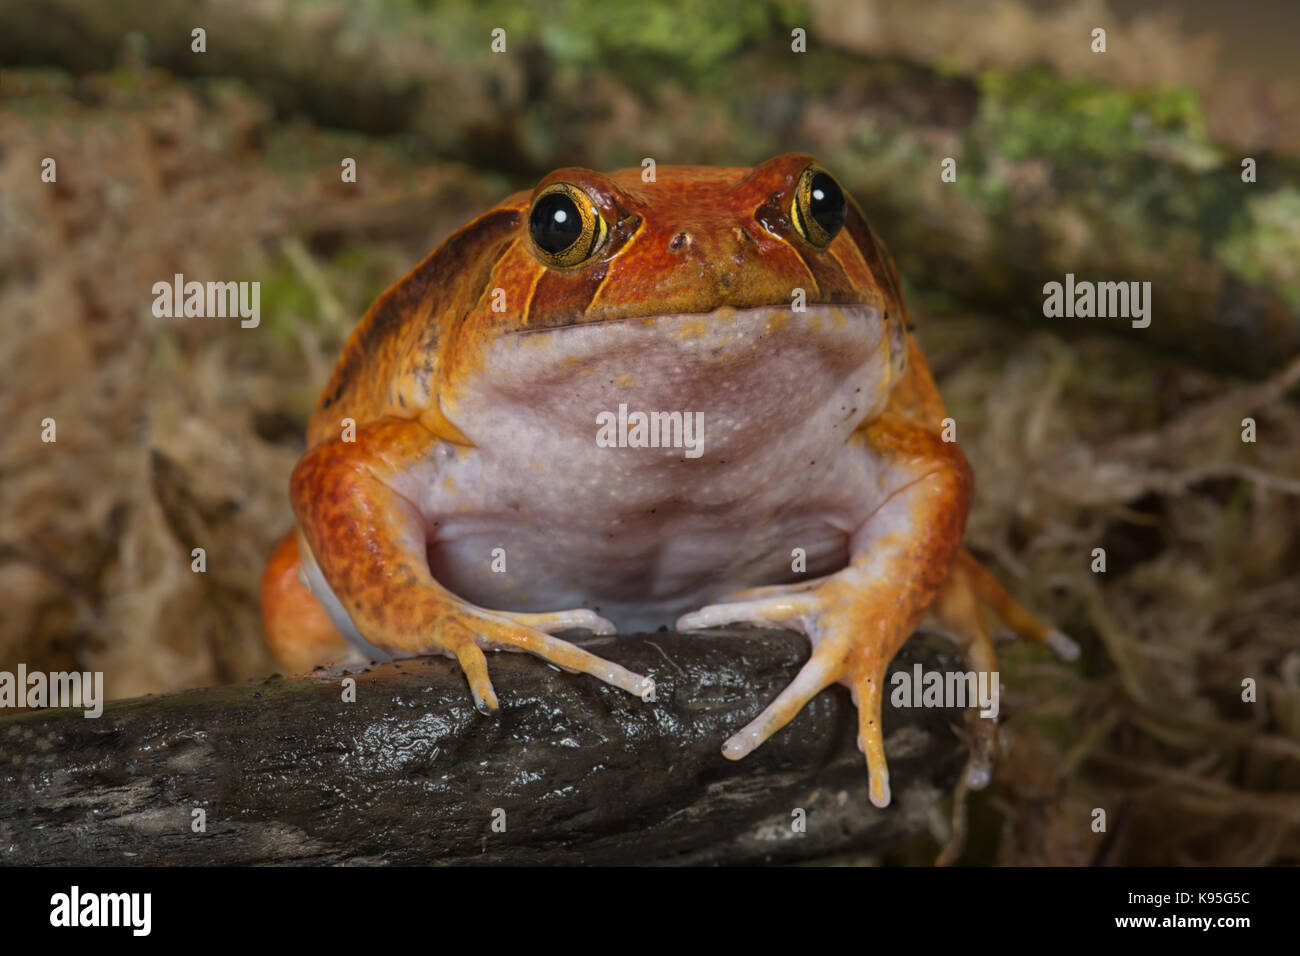 very close showing the full face of a tomato frog facing the camera - Stock Image